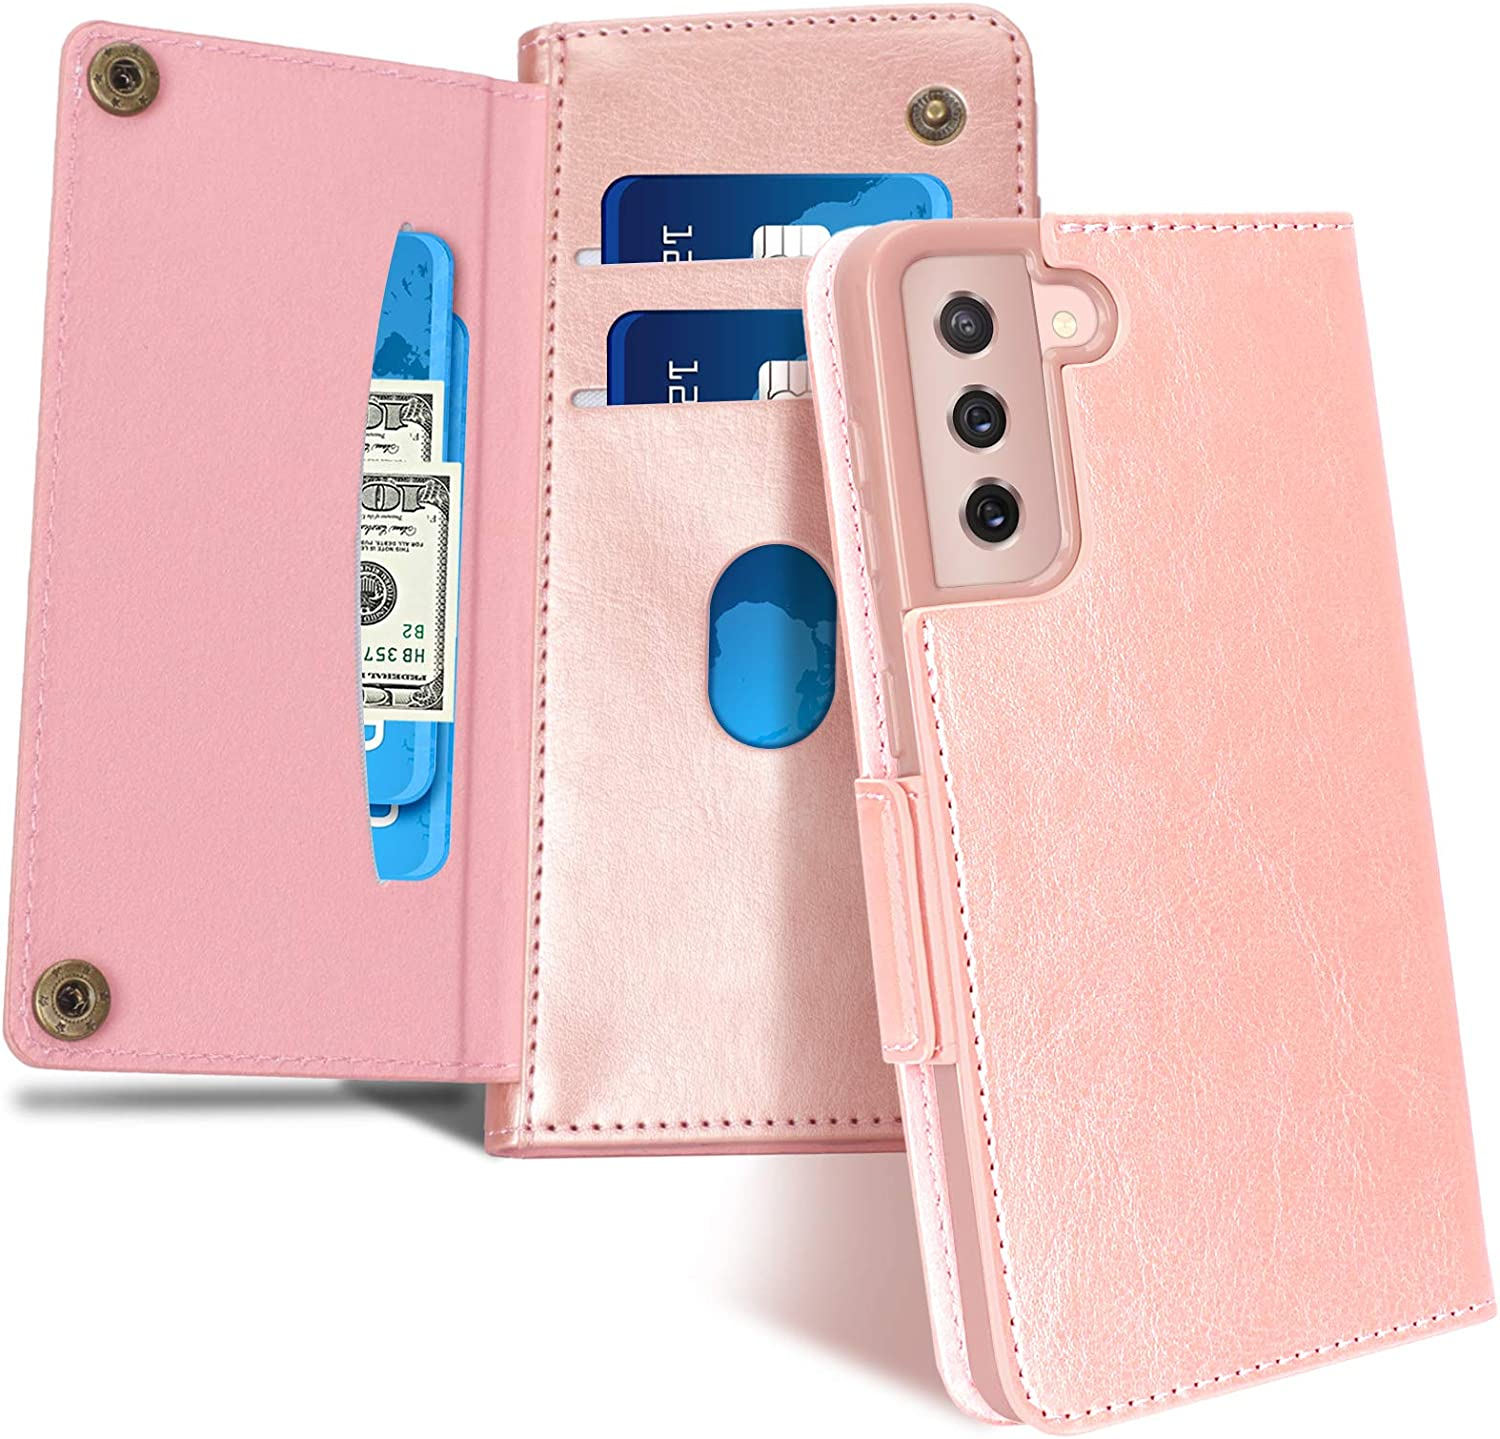 """FYY Case for Samsung Galaxy S21 5G 6.2"""", [Magnetic Closure] Luxury Leather Wallet Case Flip Folio Cover with [Front Card Slots] for Galaxy S21 5G Rose Gold"""